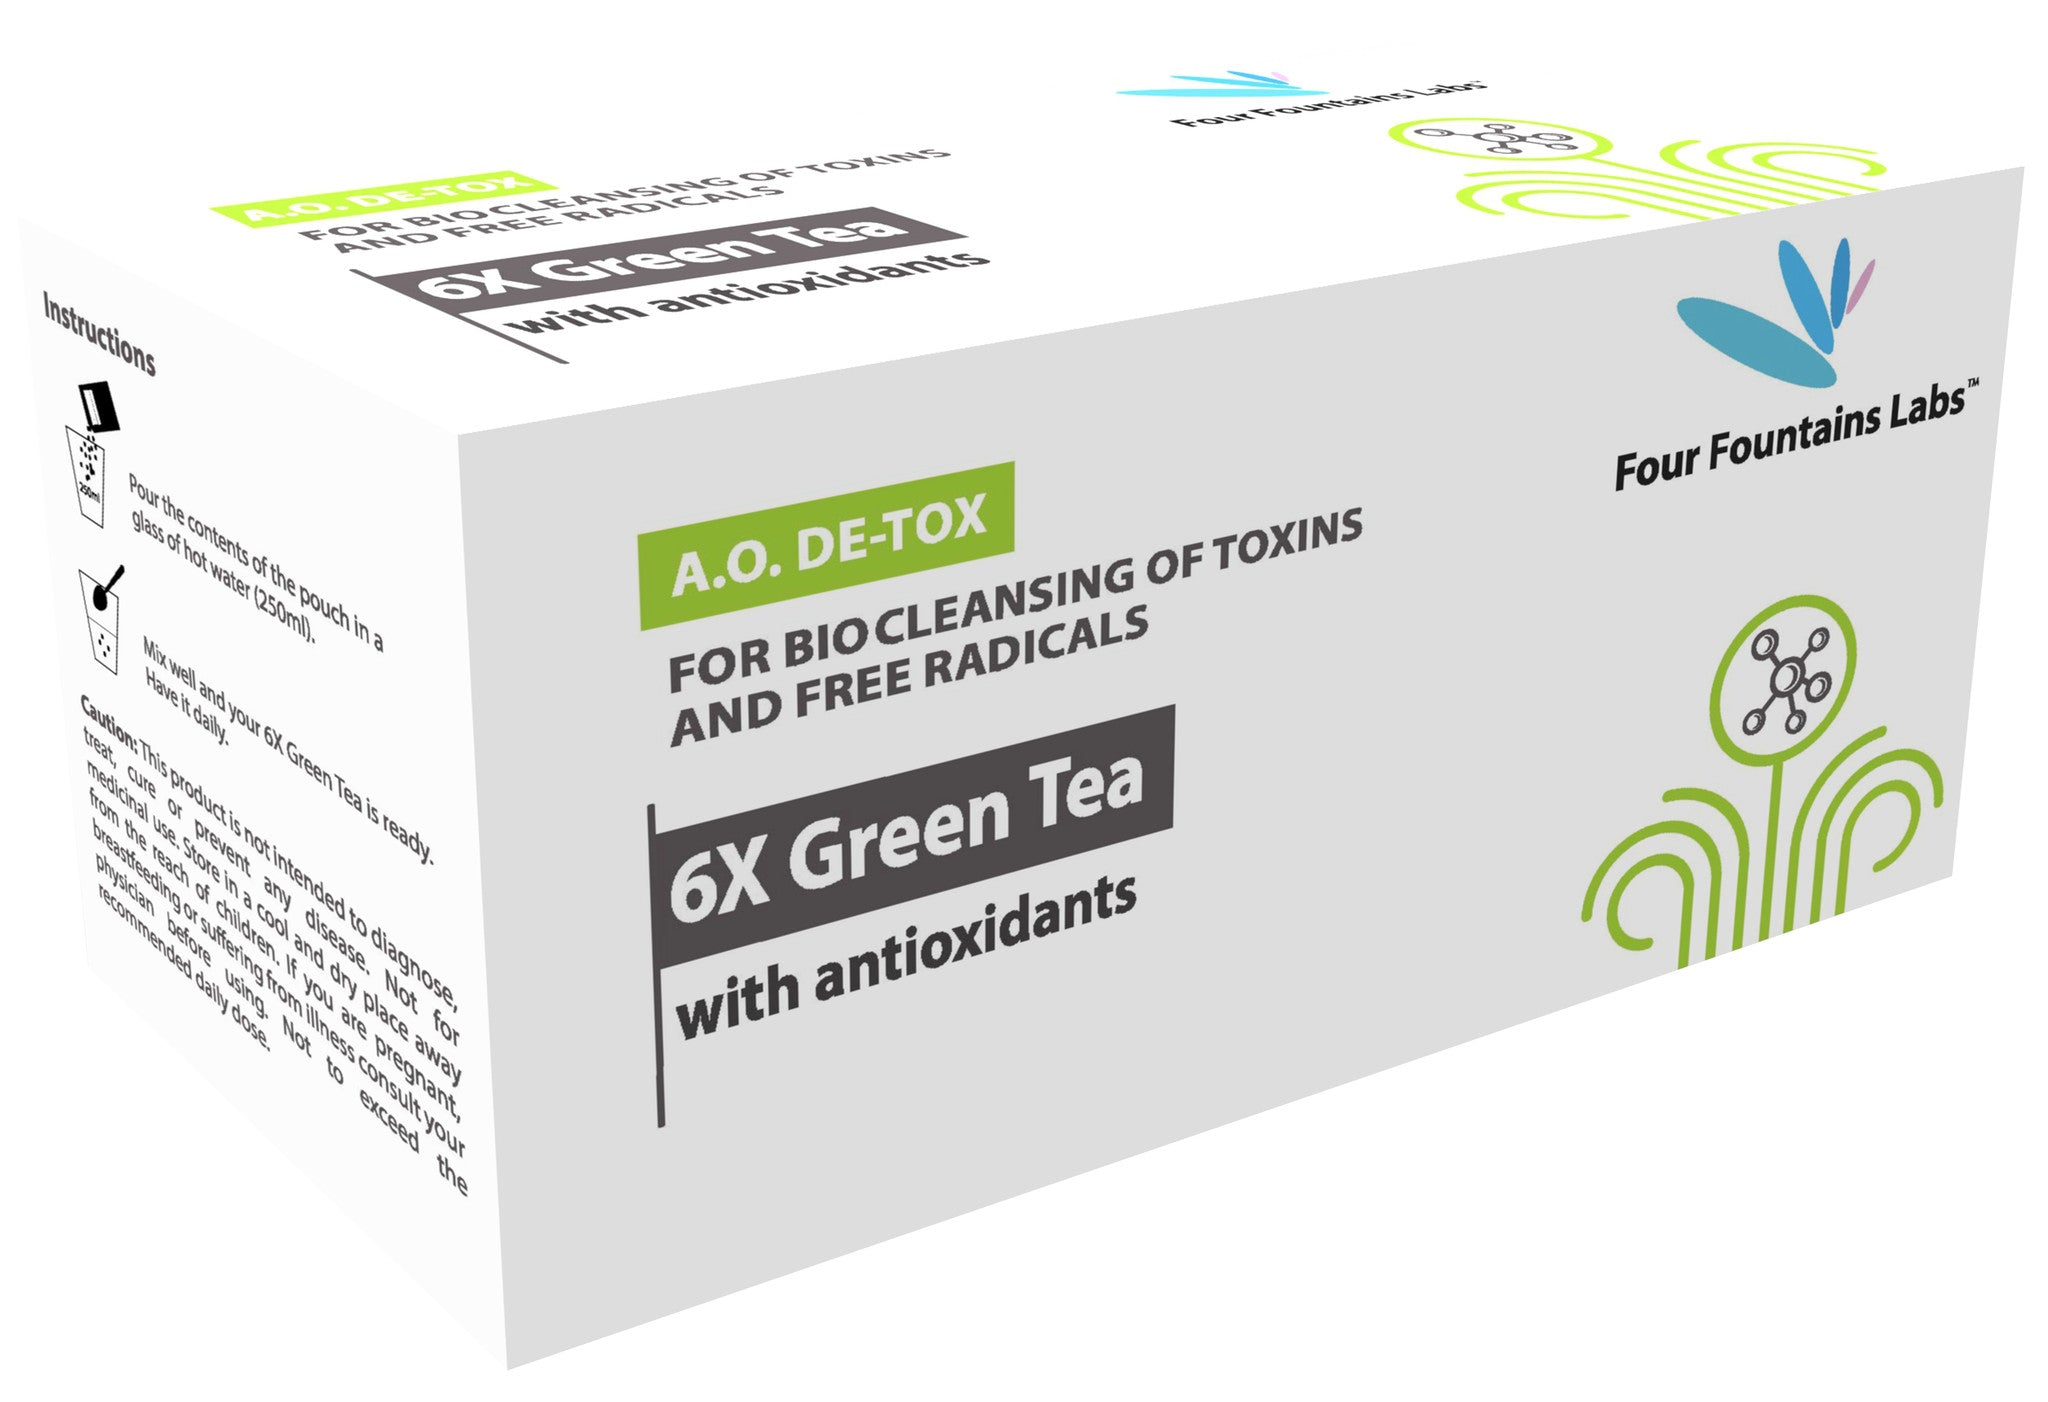 6X Green Tea - 6 times higher Antioxidants for promoting Weight Loss and anti Ageing  (1 Month Supply)